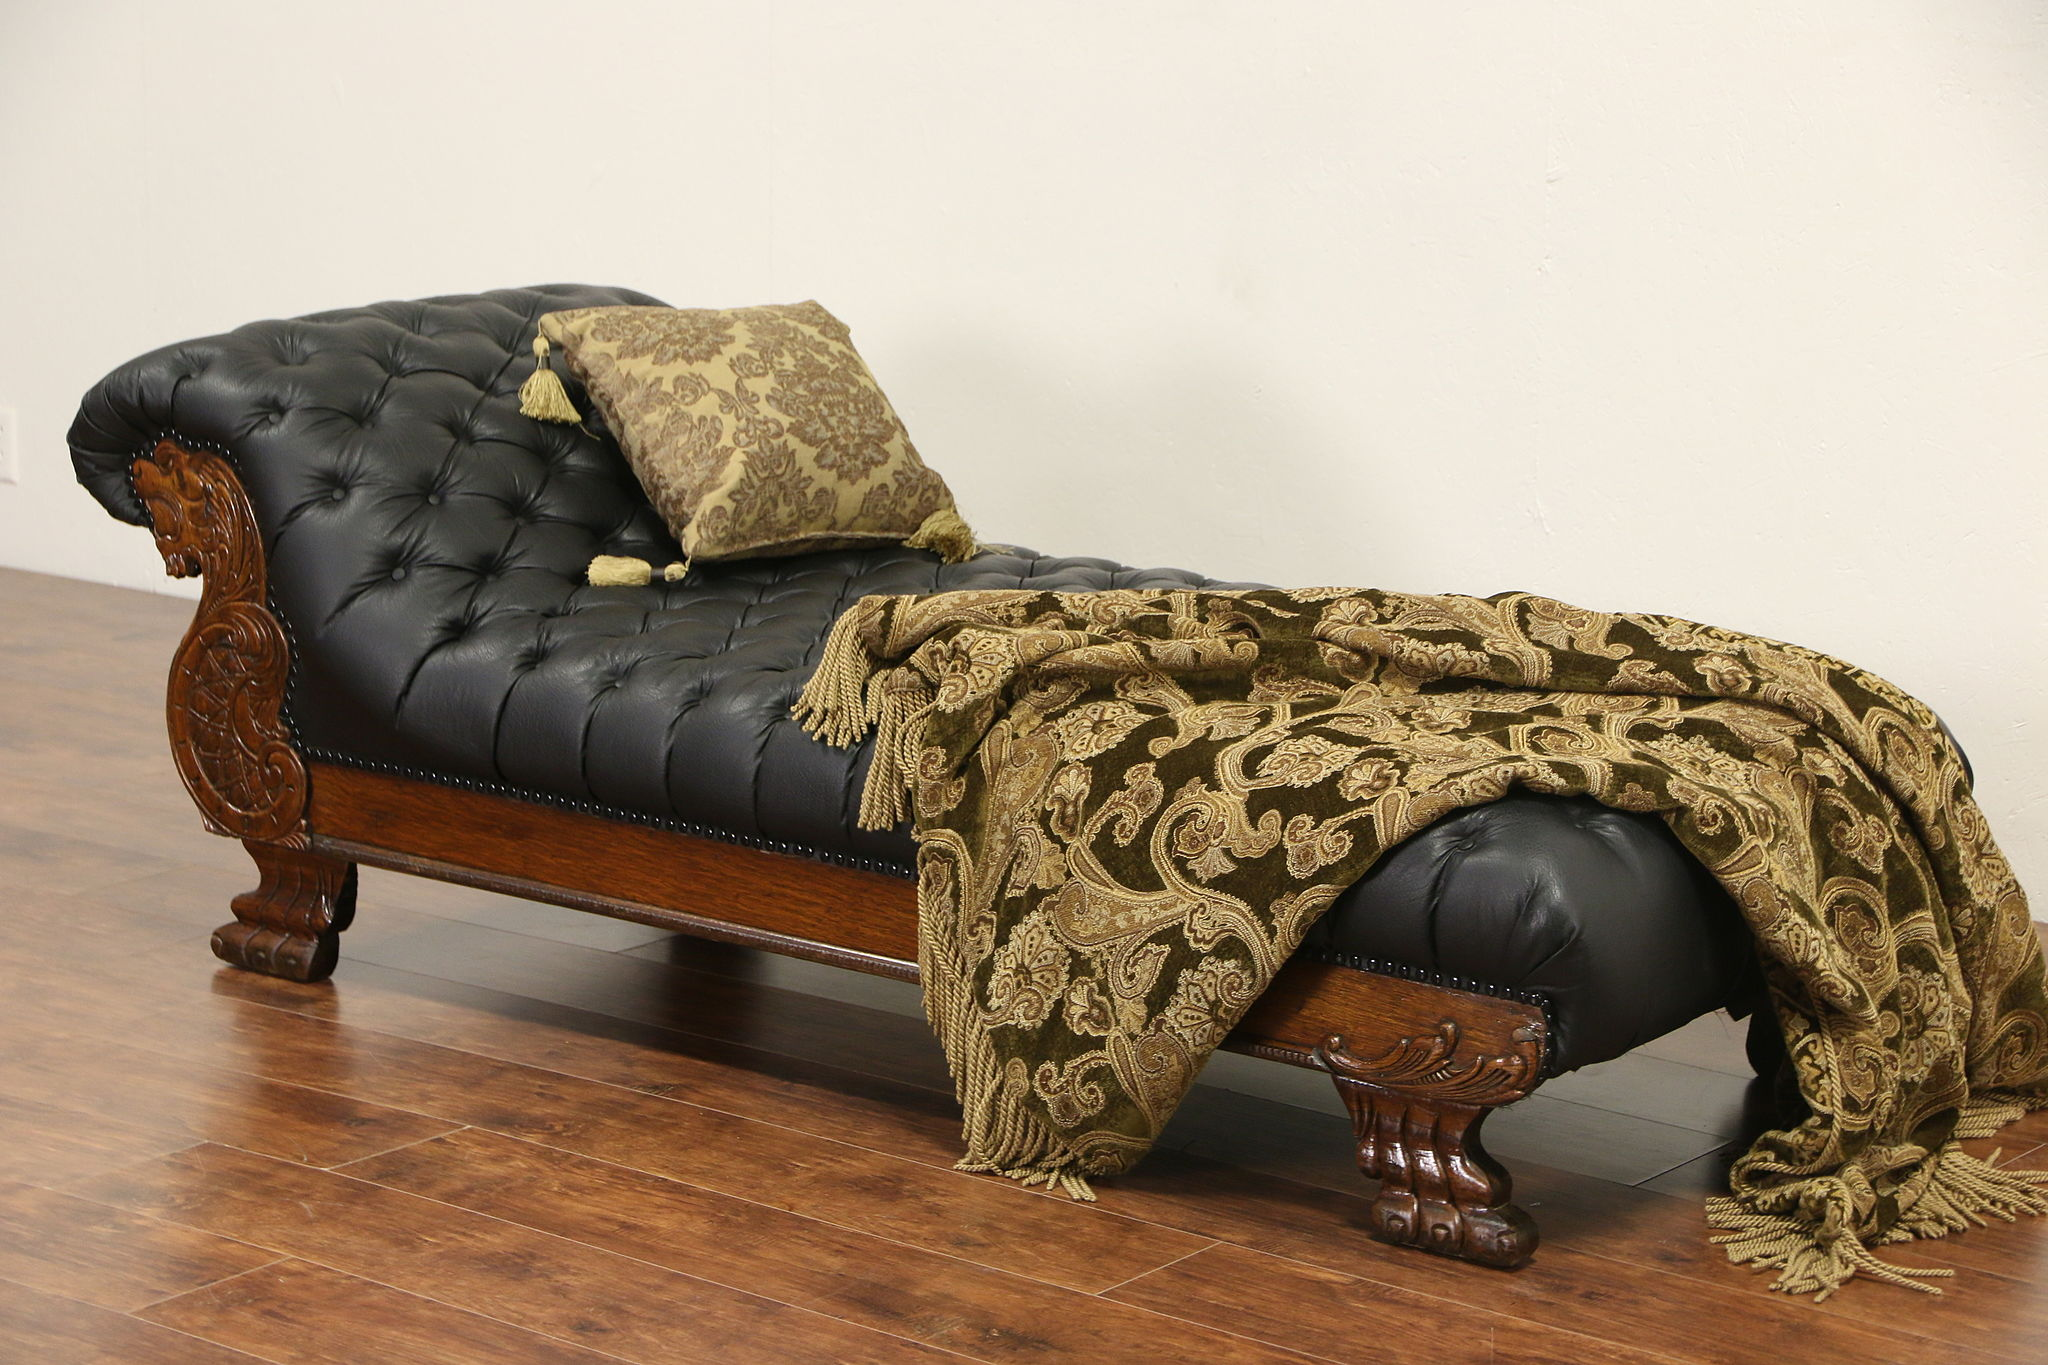 retro antique leather chaise img and vintage products lounge furniture longue